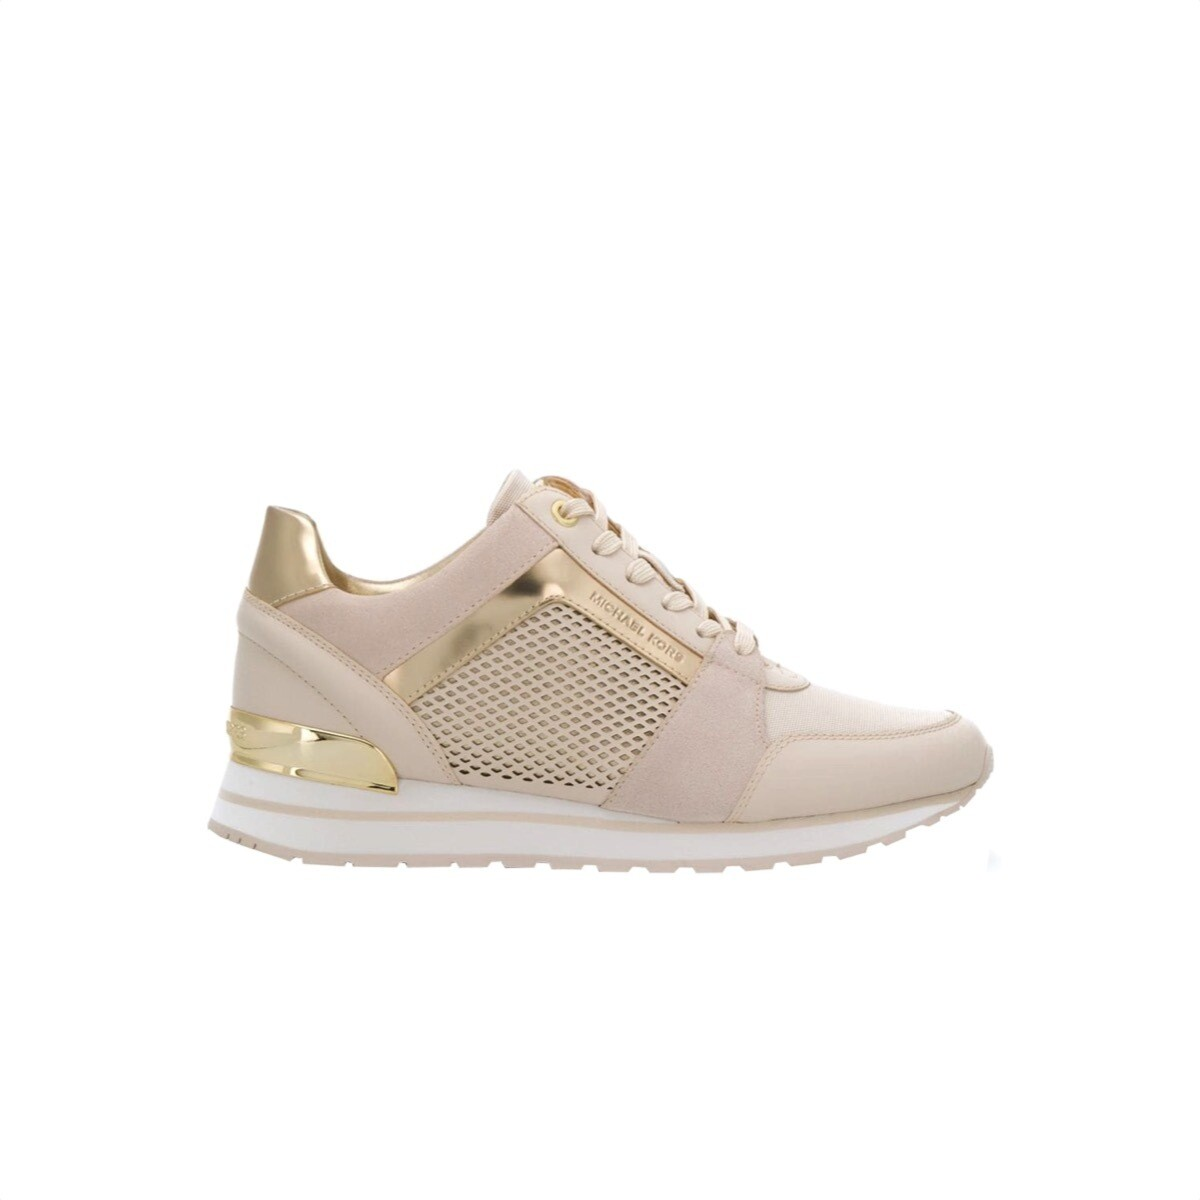 MICHAEL KORS - Billie Trainer - Light Cream